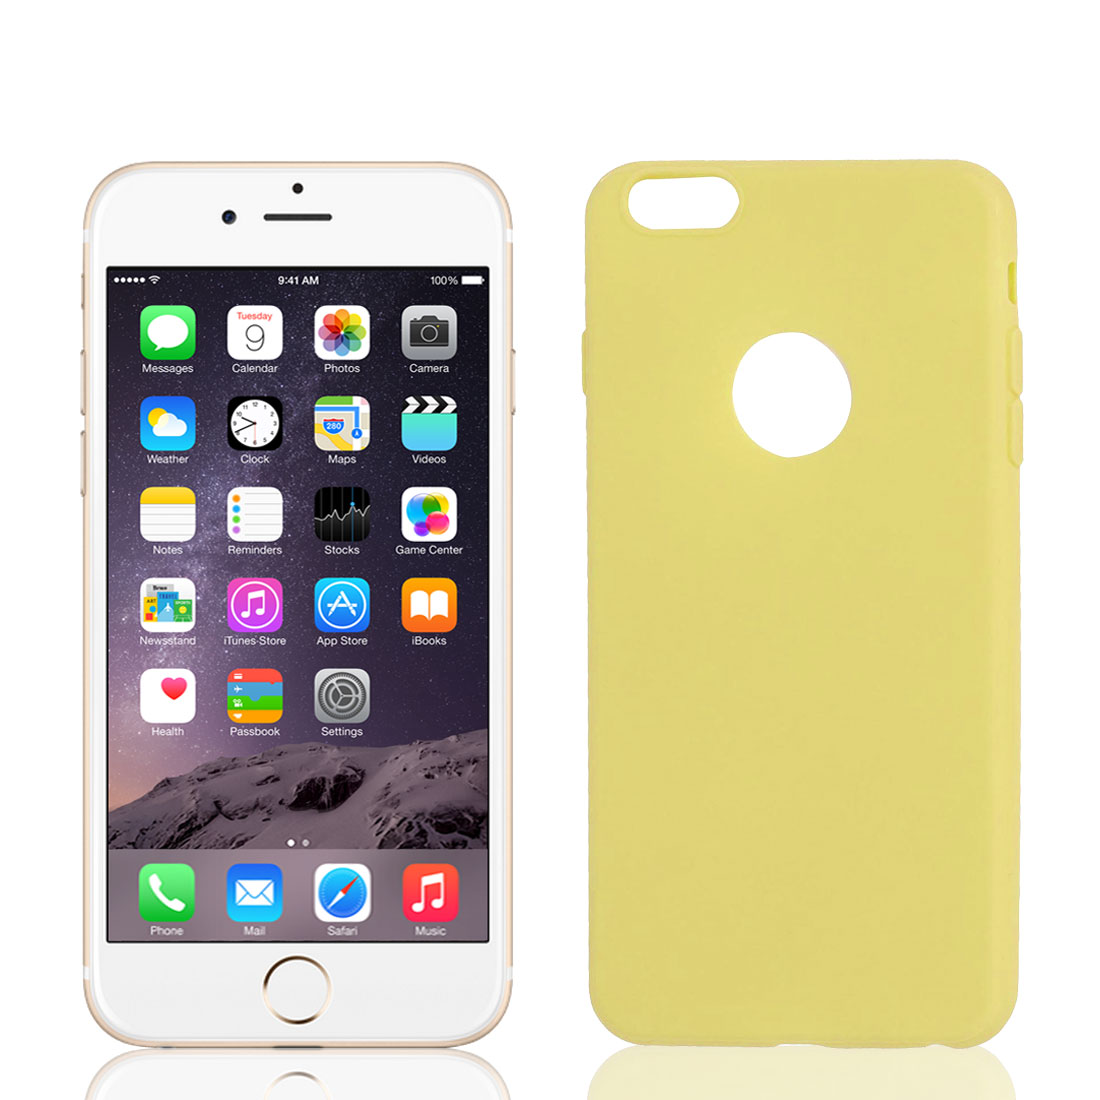 Soft Silicone Skin Case Cover Protector Yellow for iPhone 6 Plus 5.5""